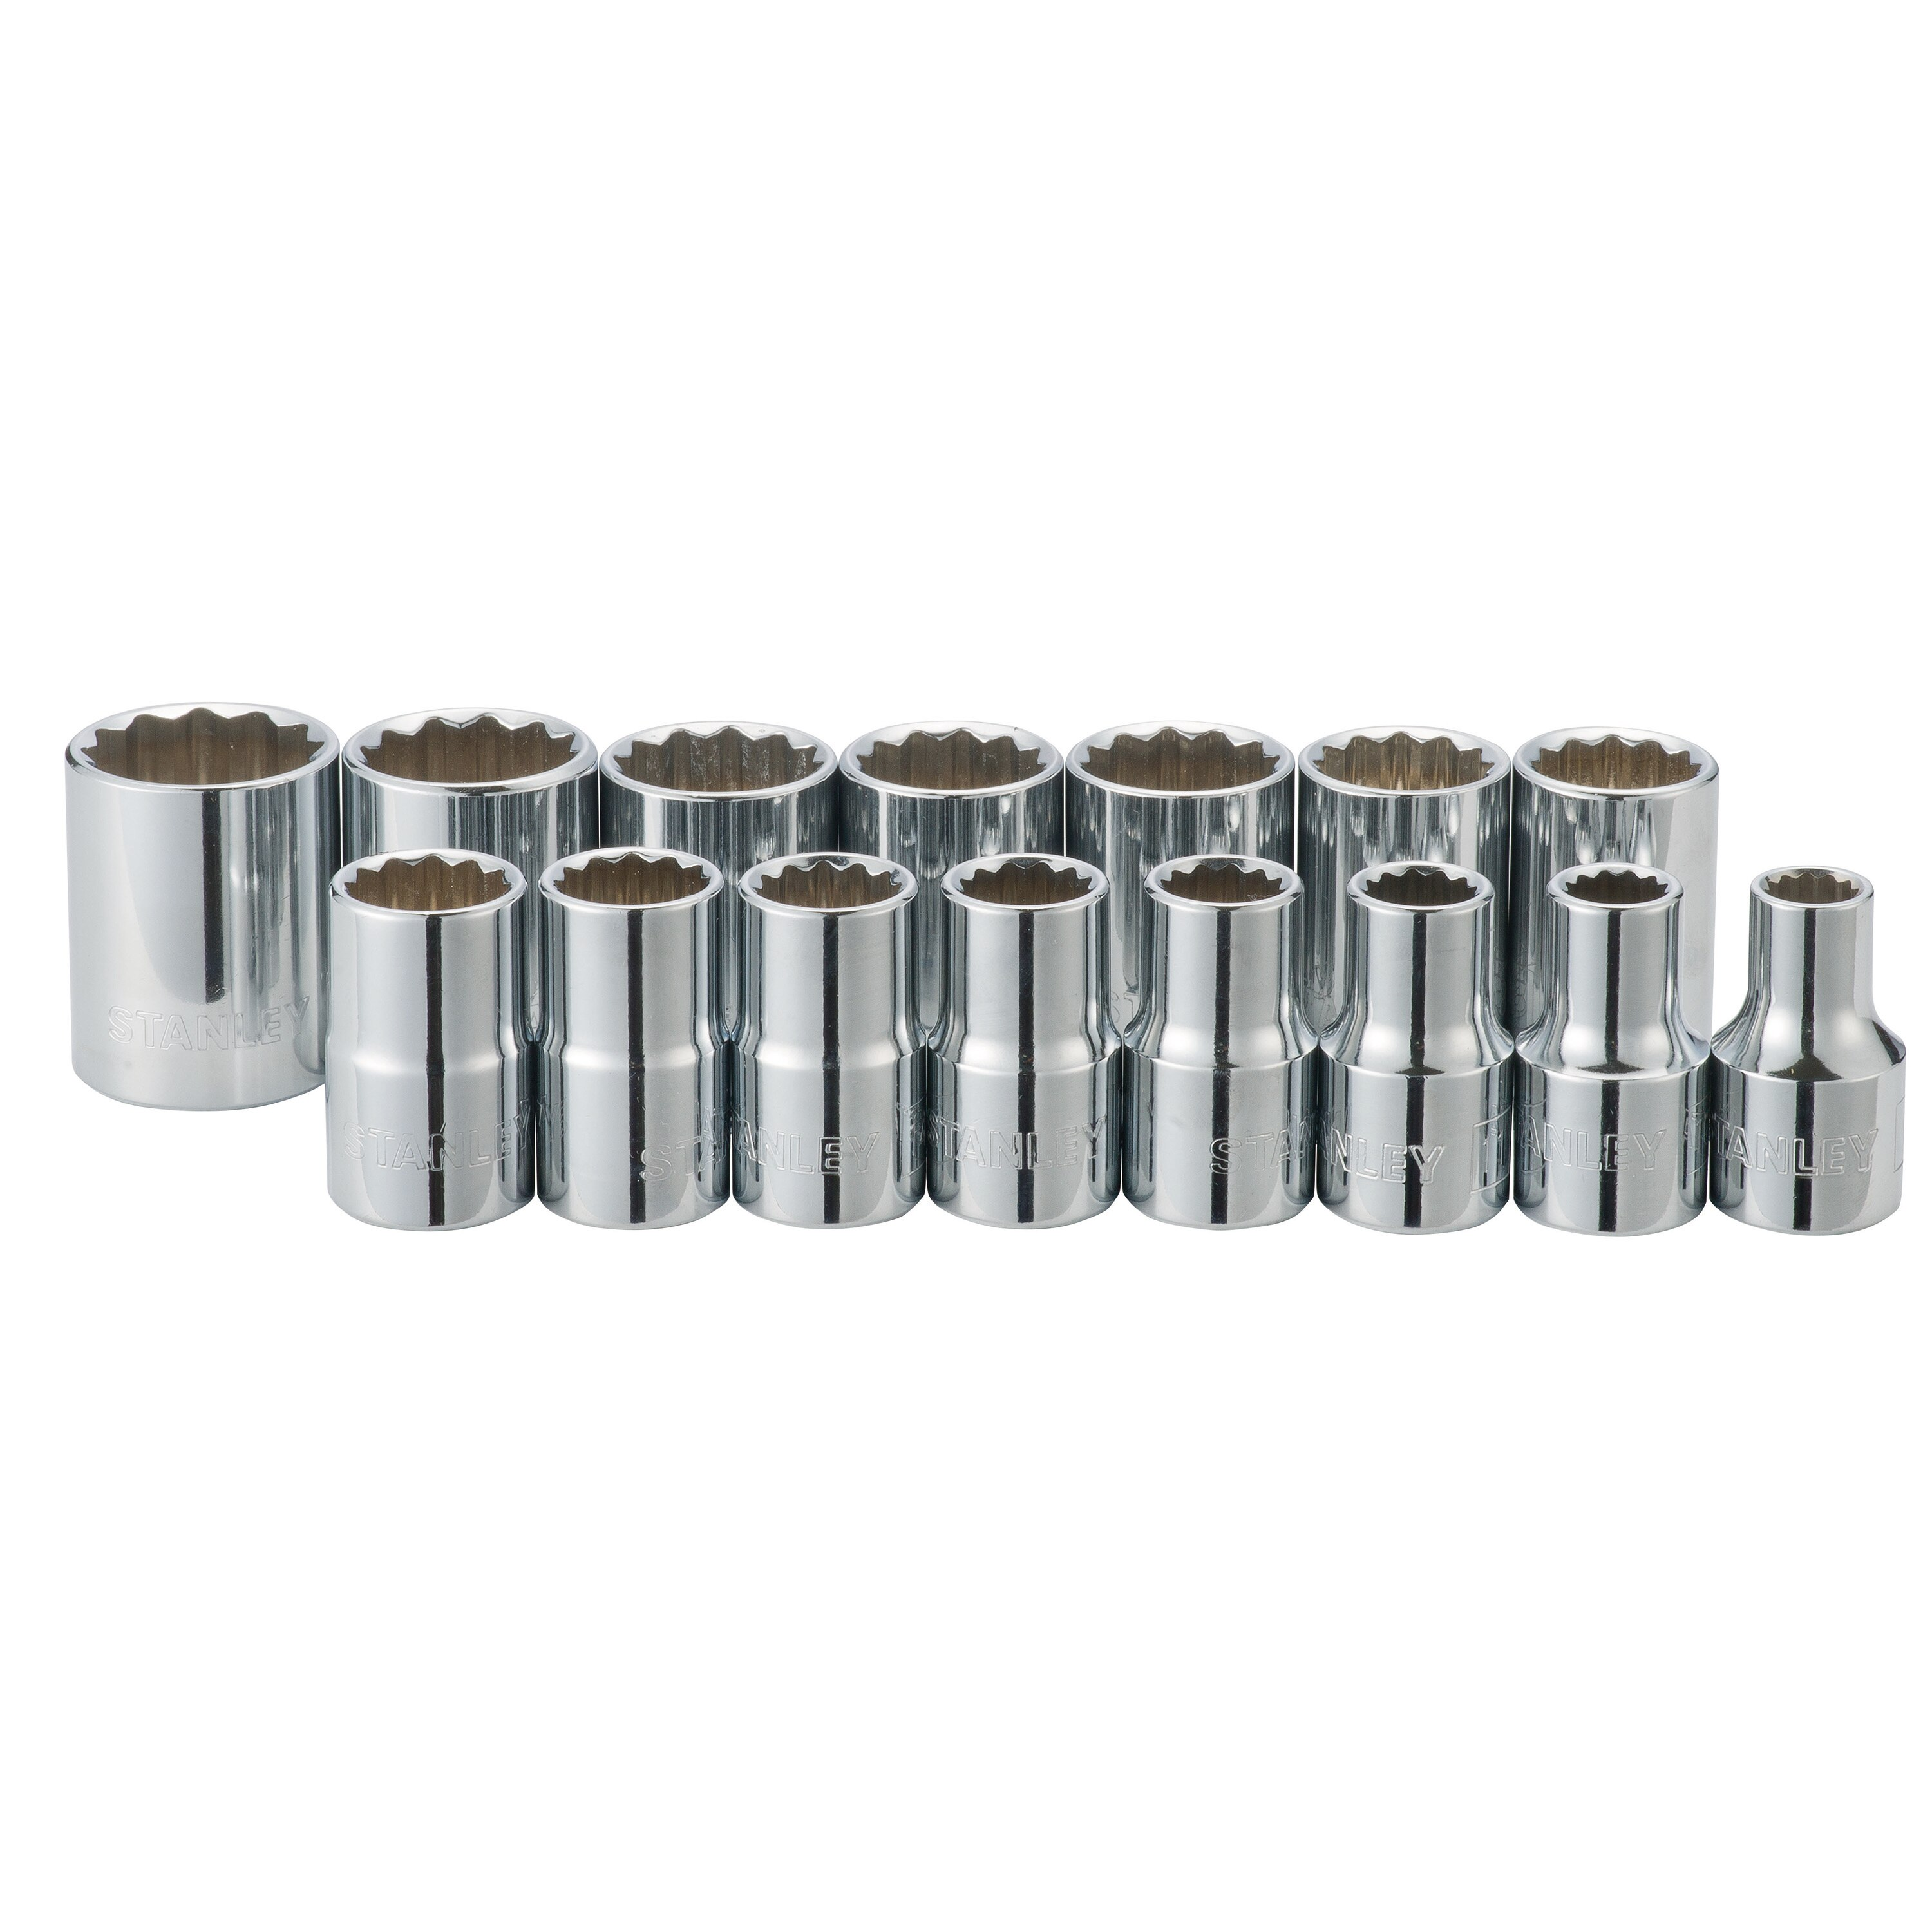 Stanley Tools - 15 pc 12 in Drive Standard Socket Set - 89-339